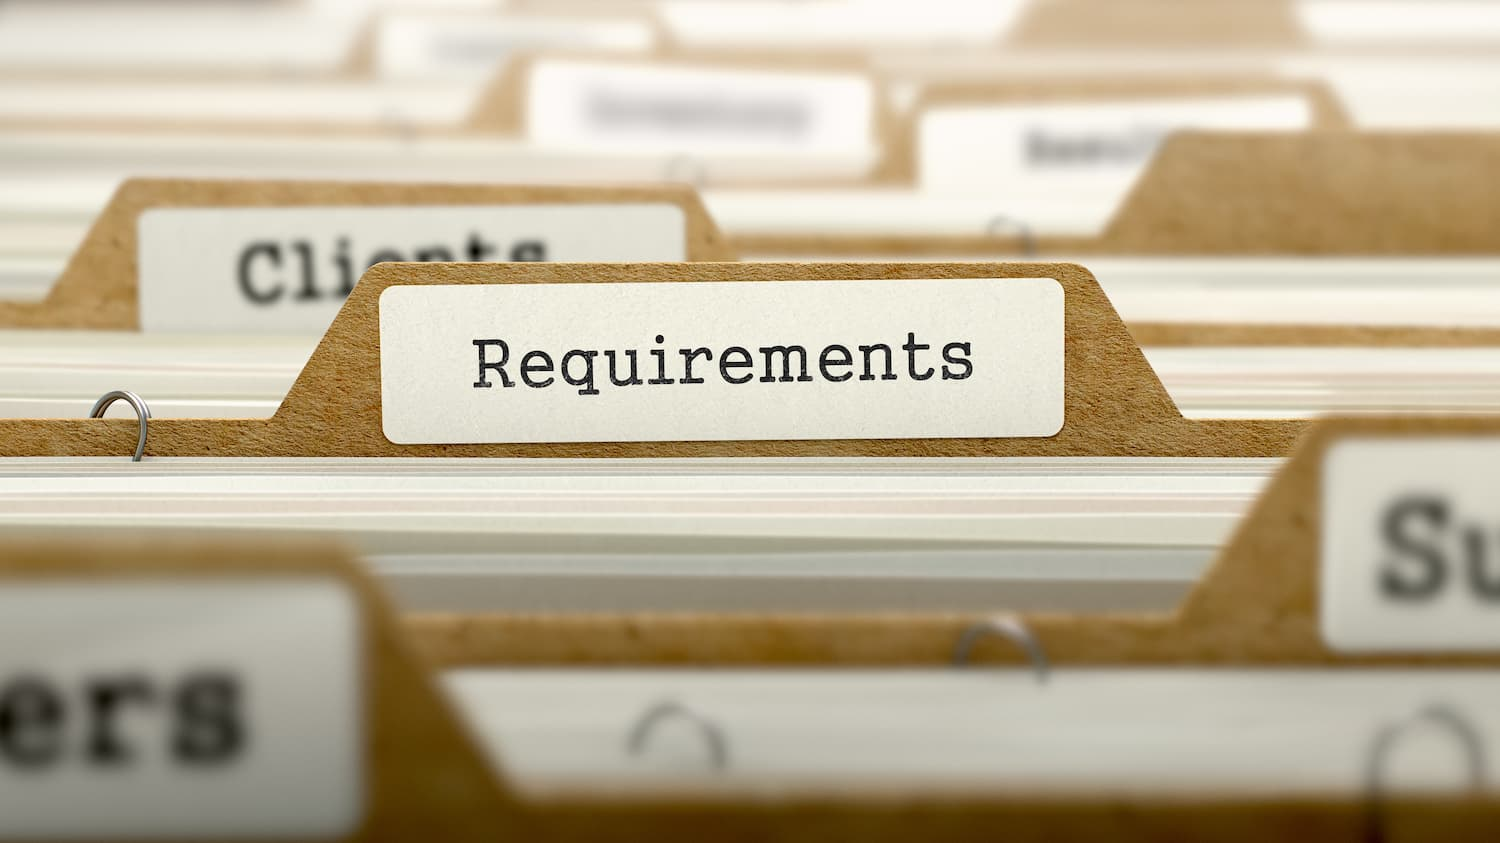 haccp certification requirements